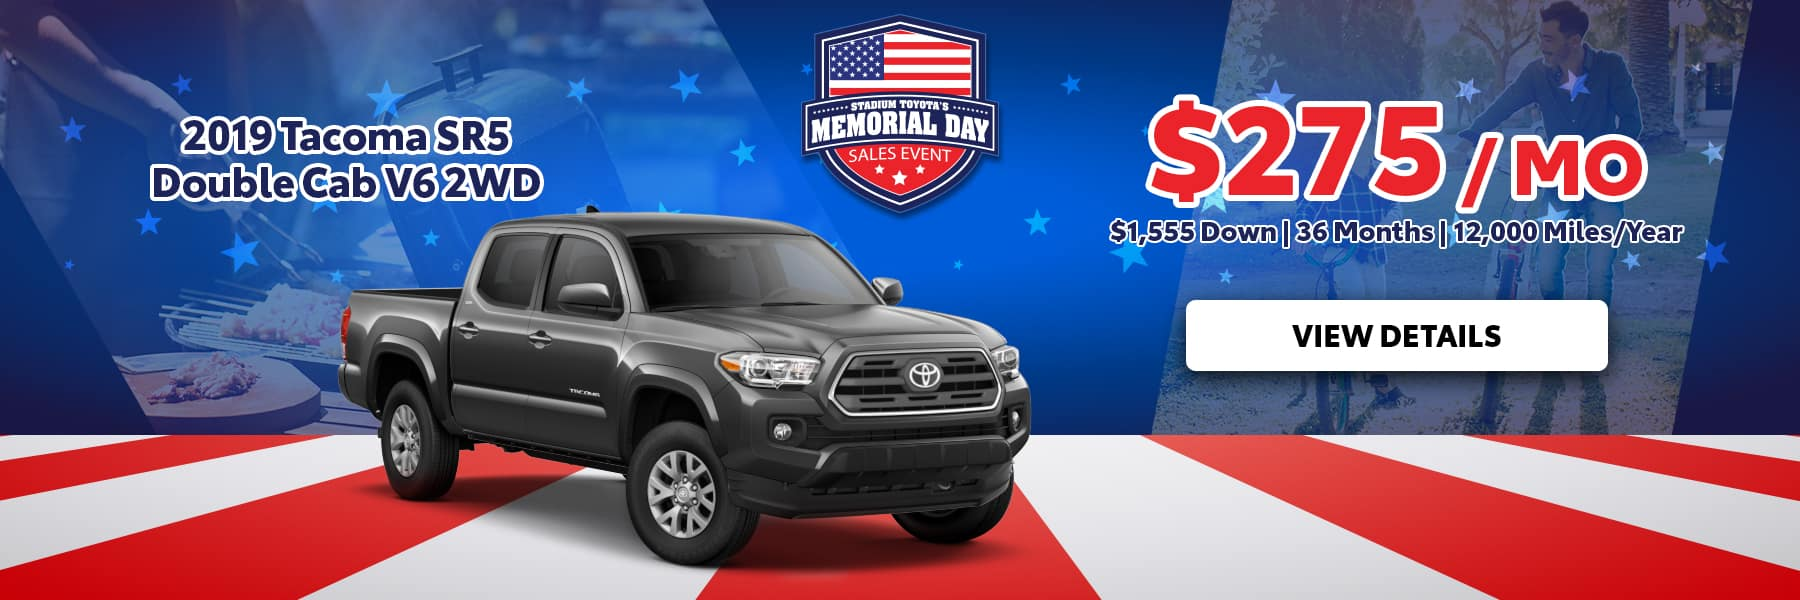 Memorial Day Tacoma Offer